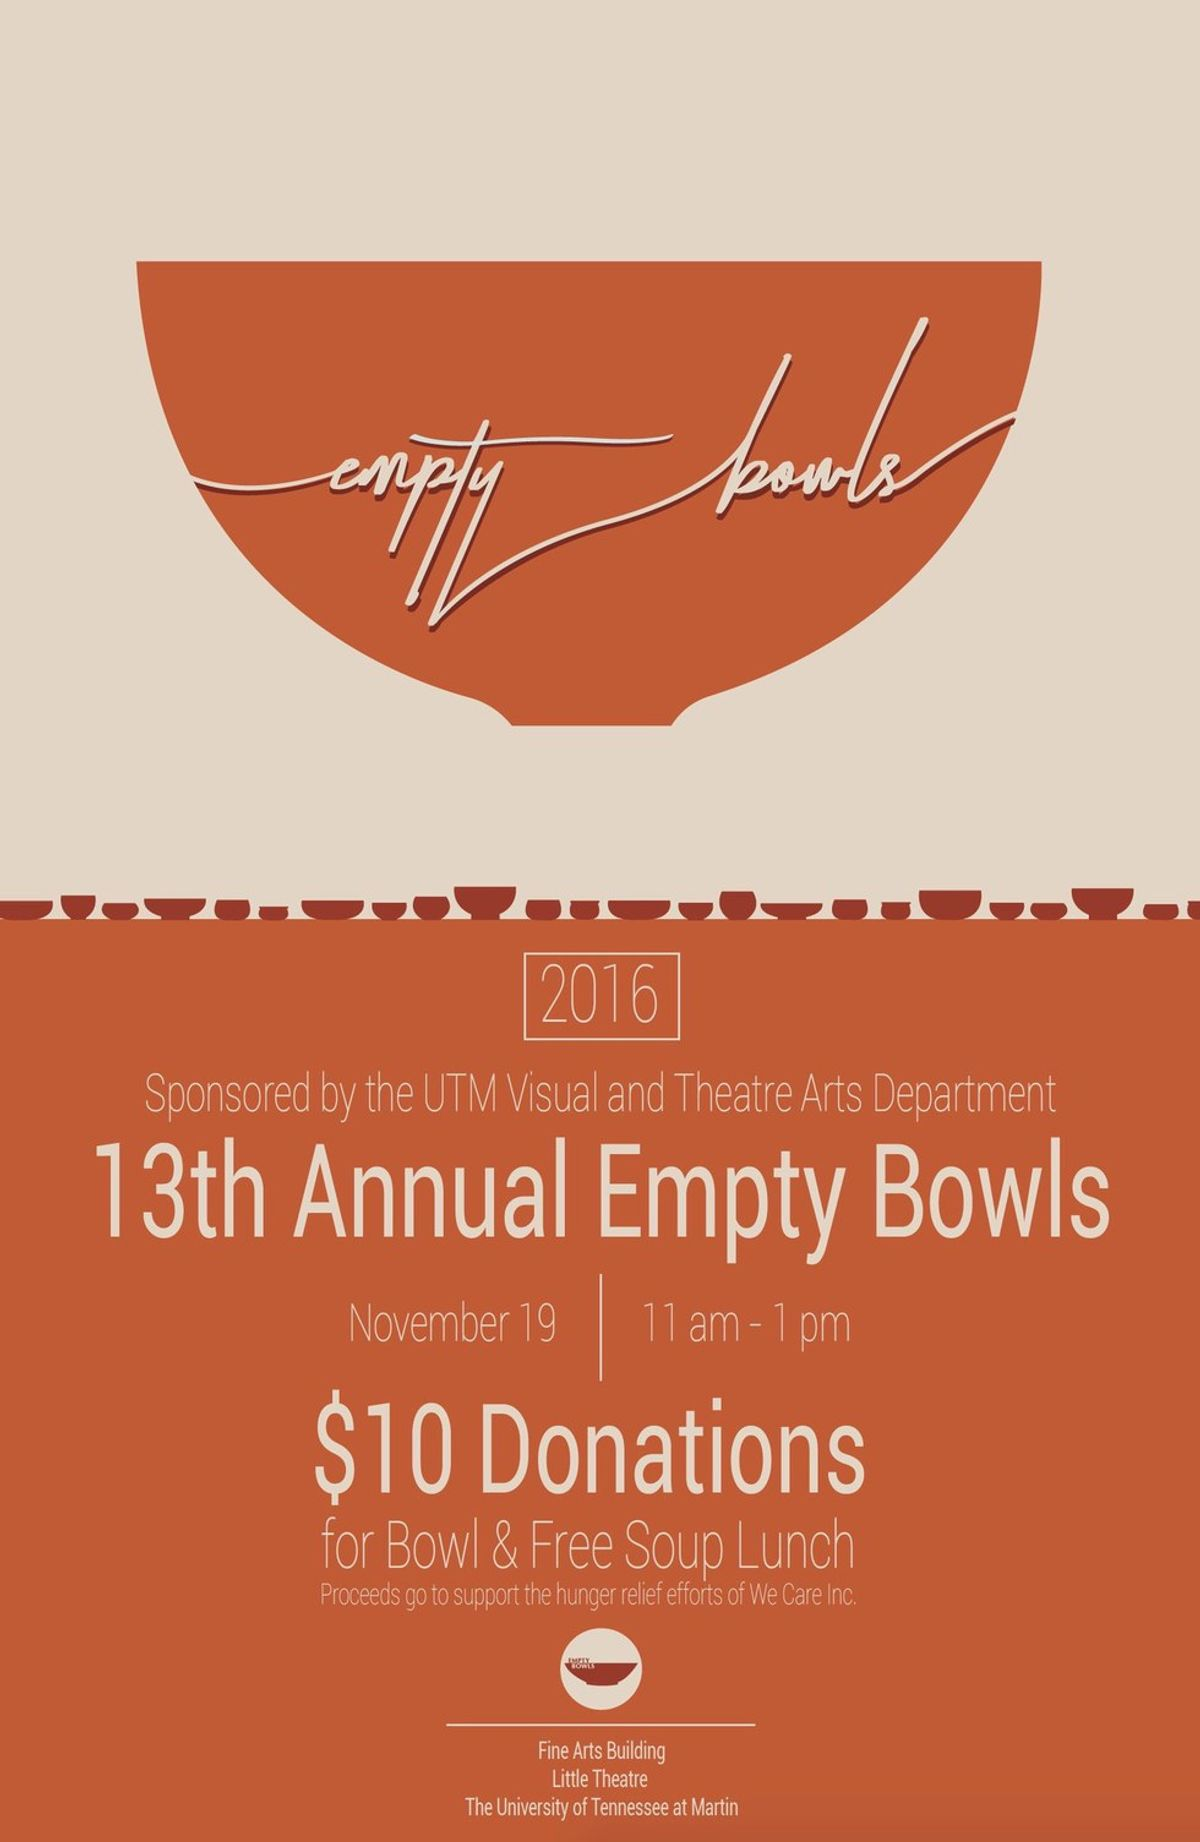 The 13th Annual Empty Bowls